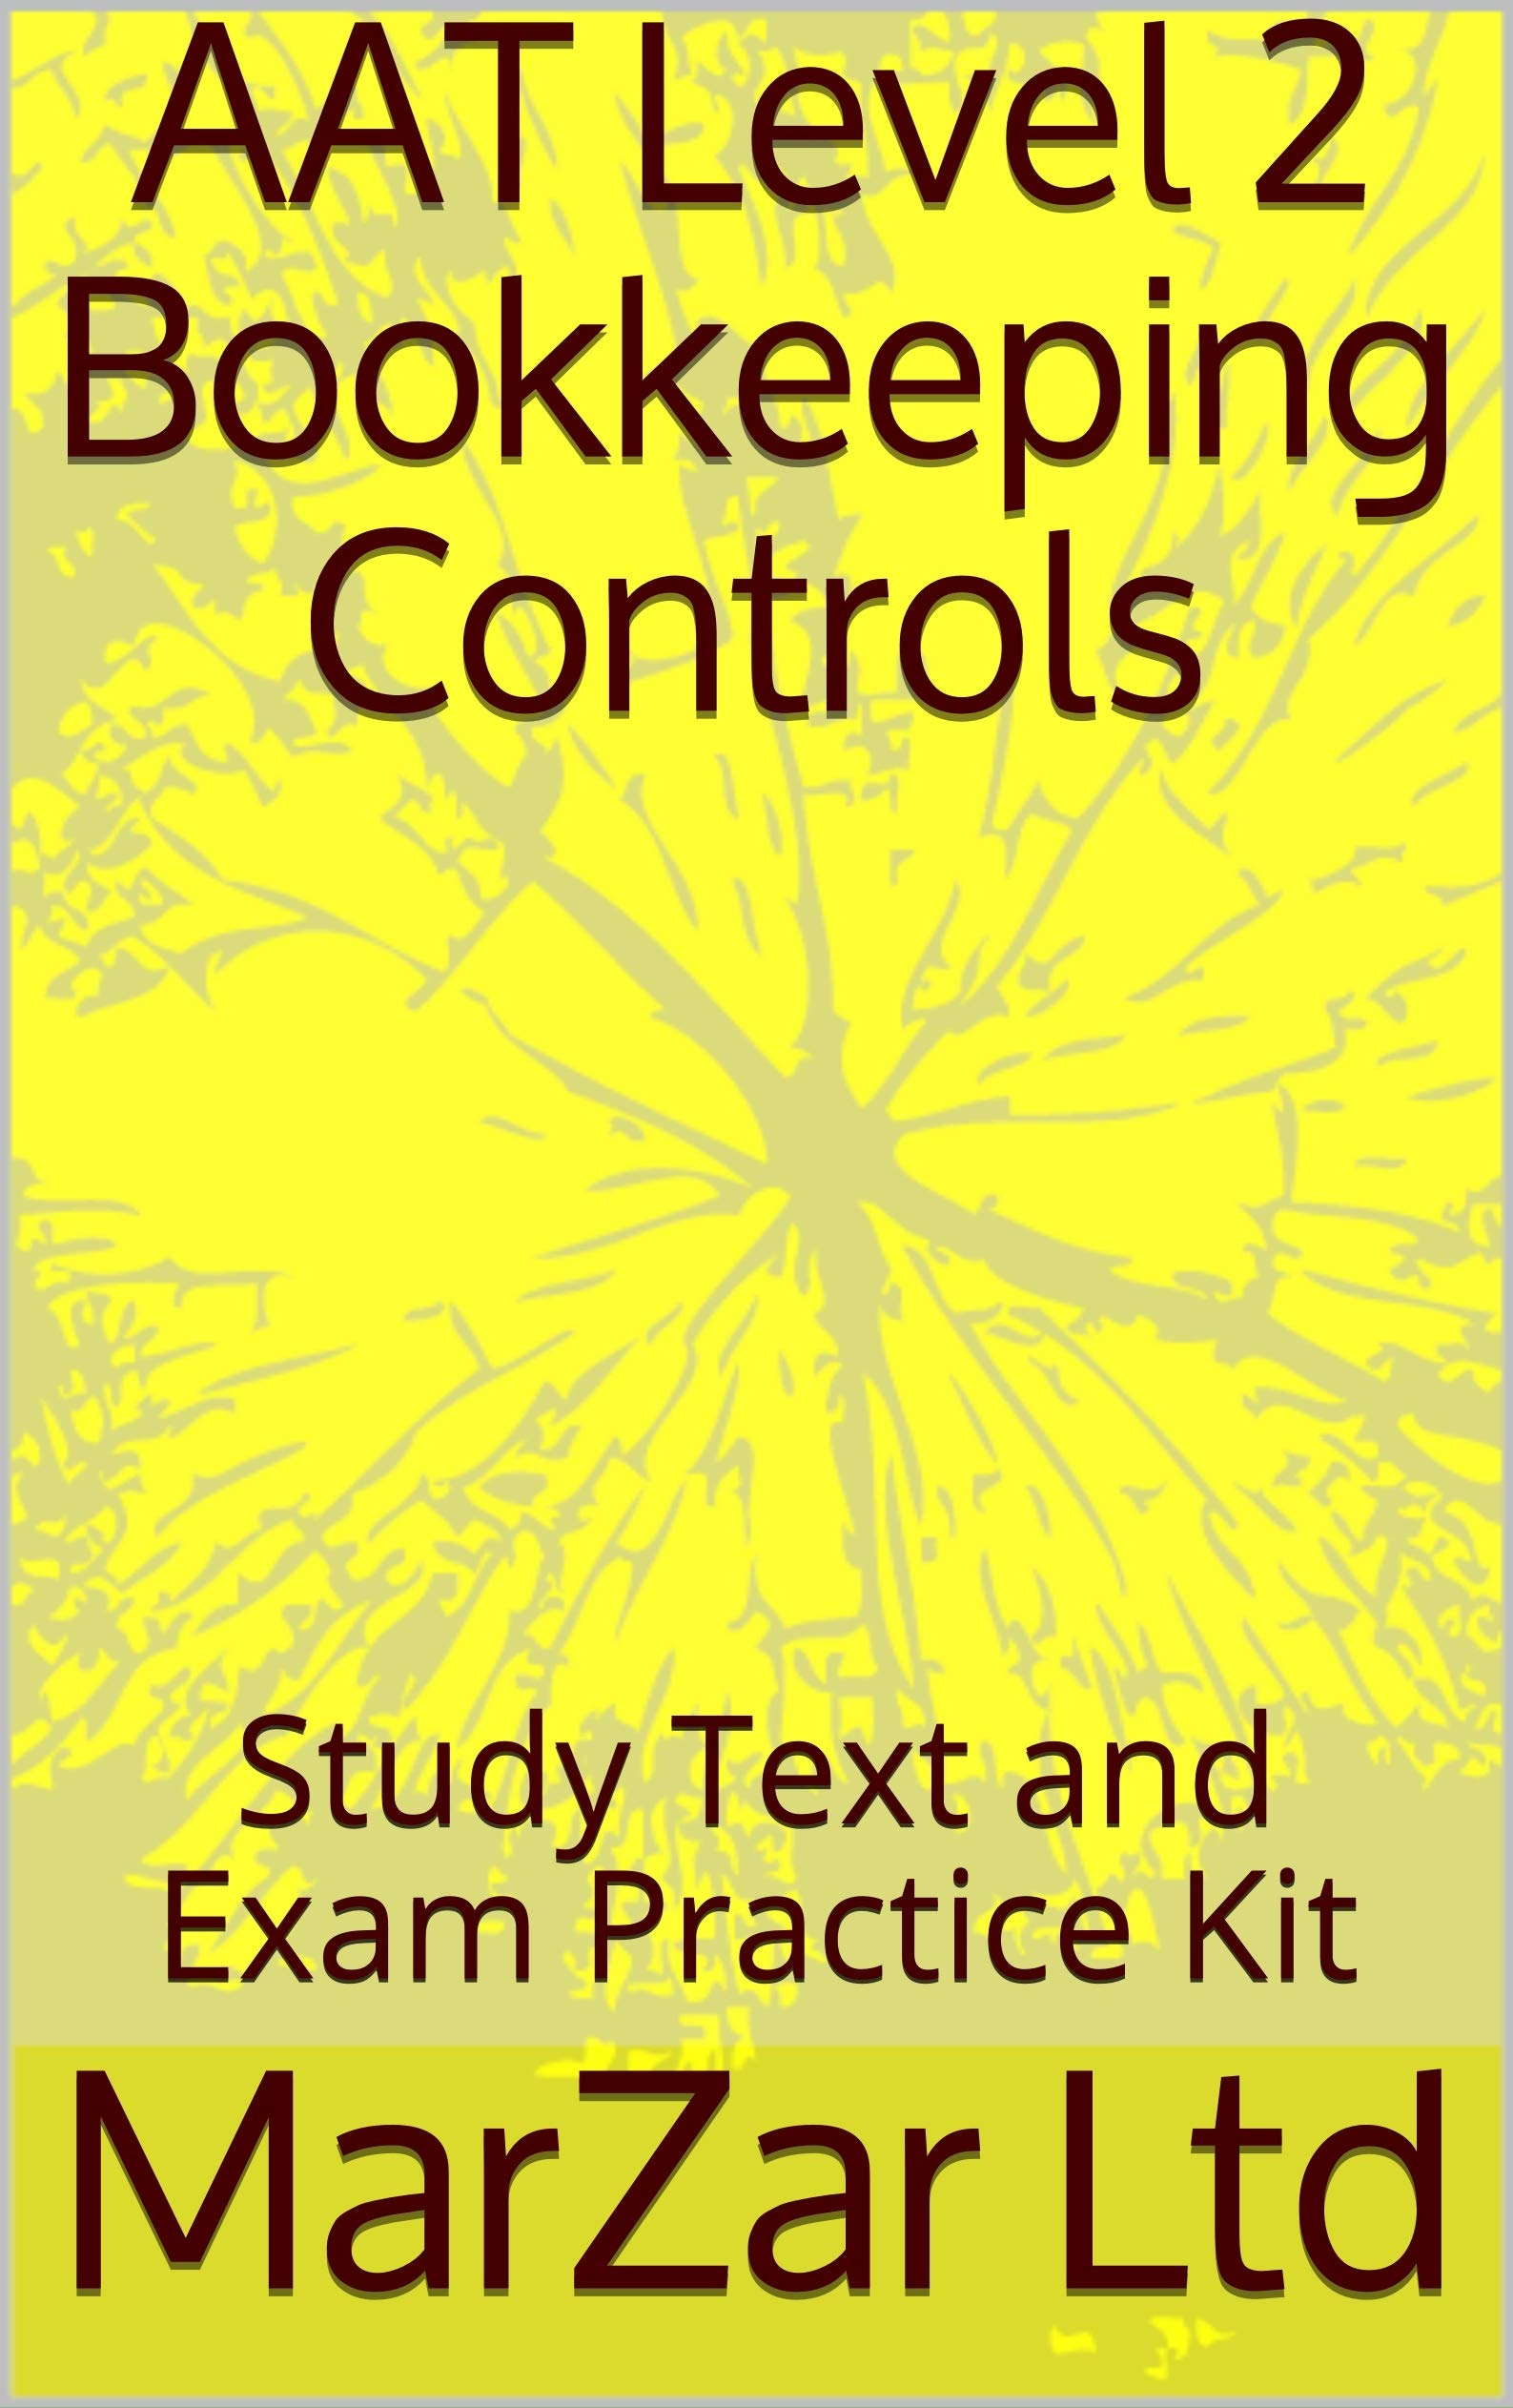 AAT Level 2 Bookkeeping Controls: Study Text and Exam Practice Kit